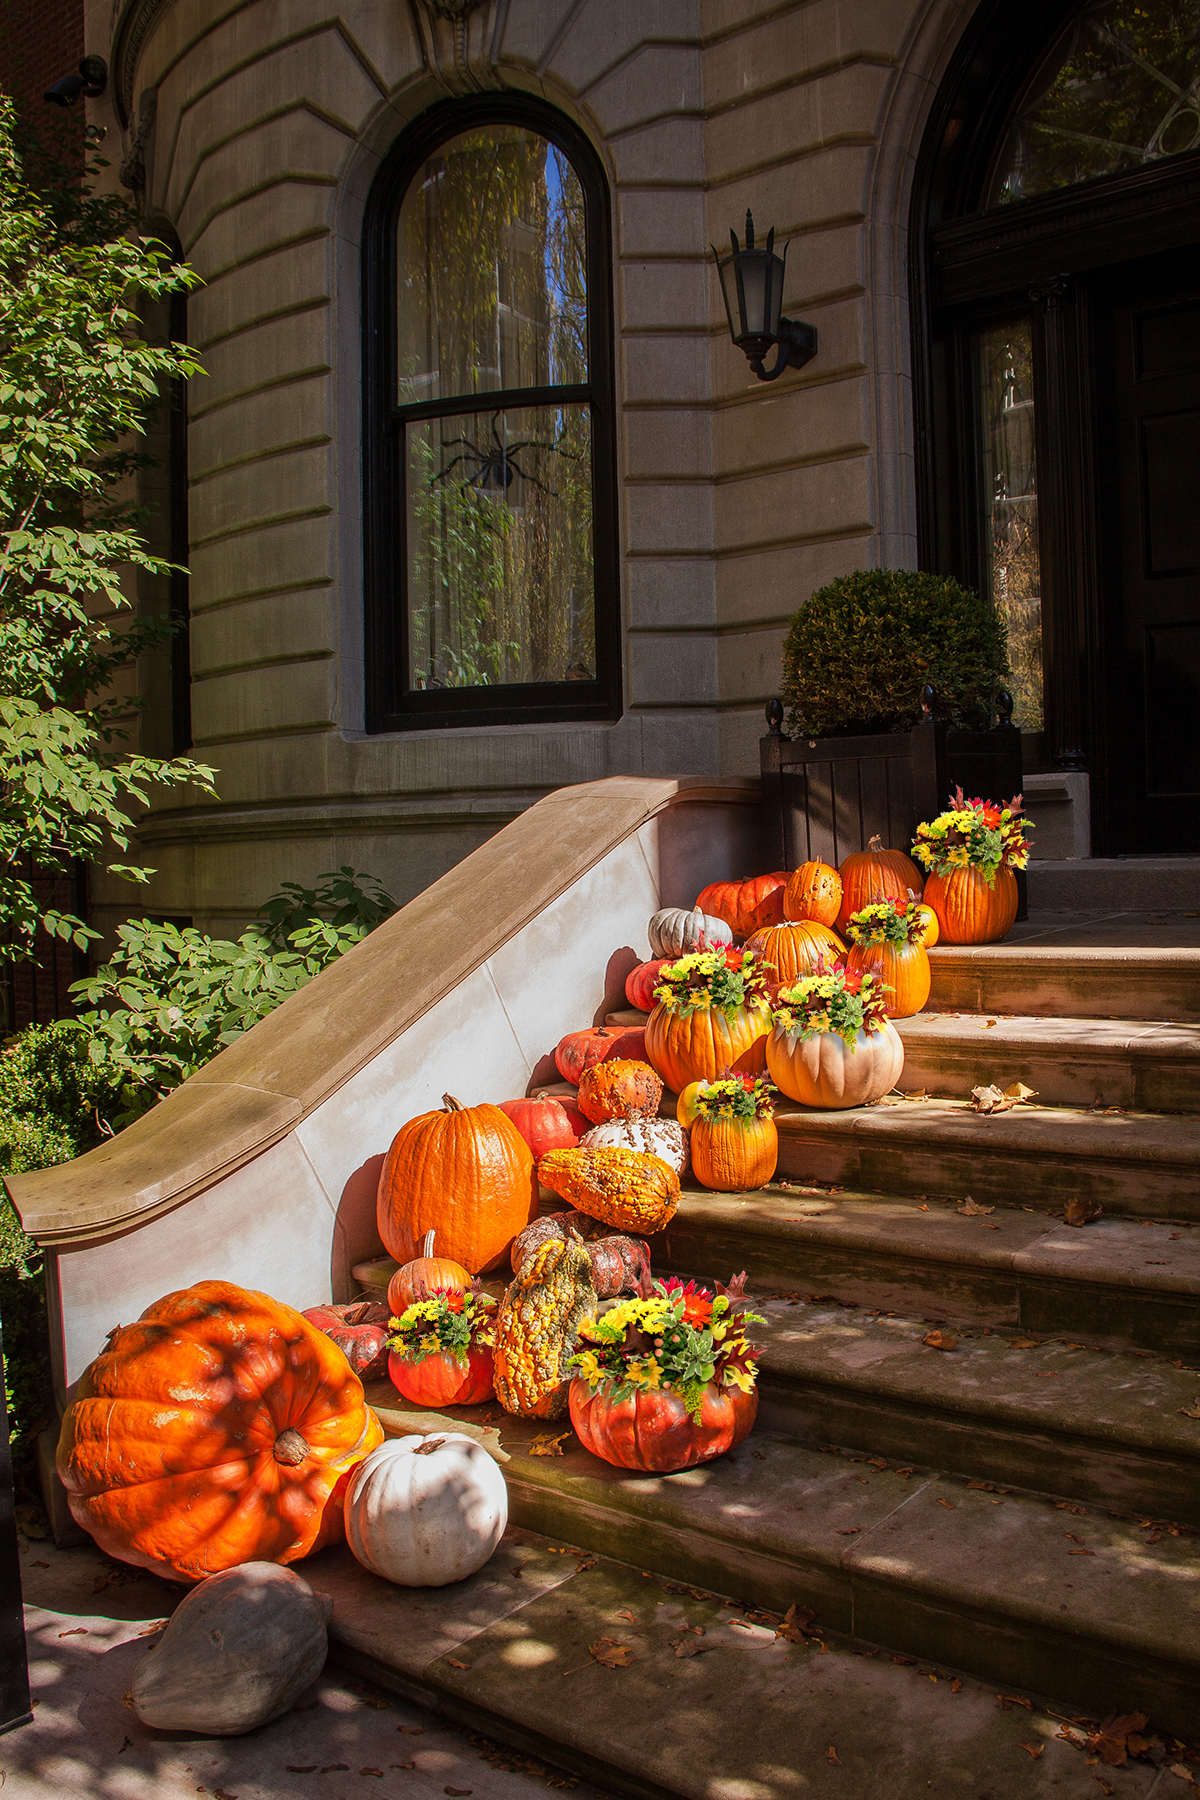 Halloween decorations to prevent disasters